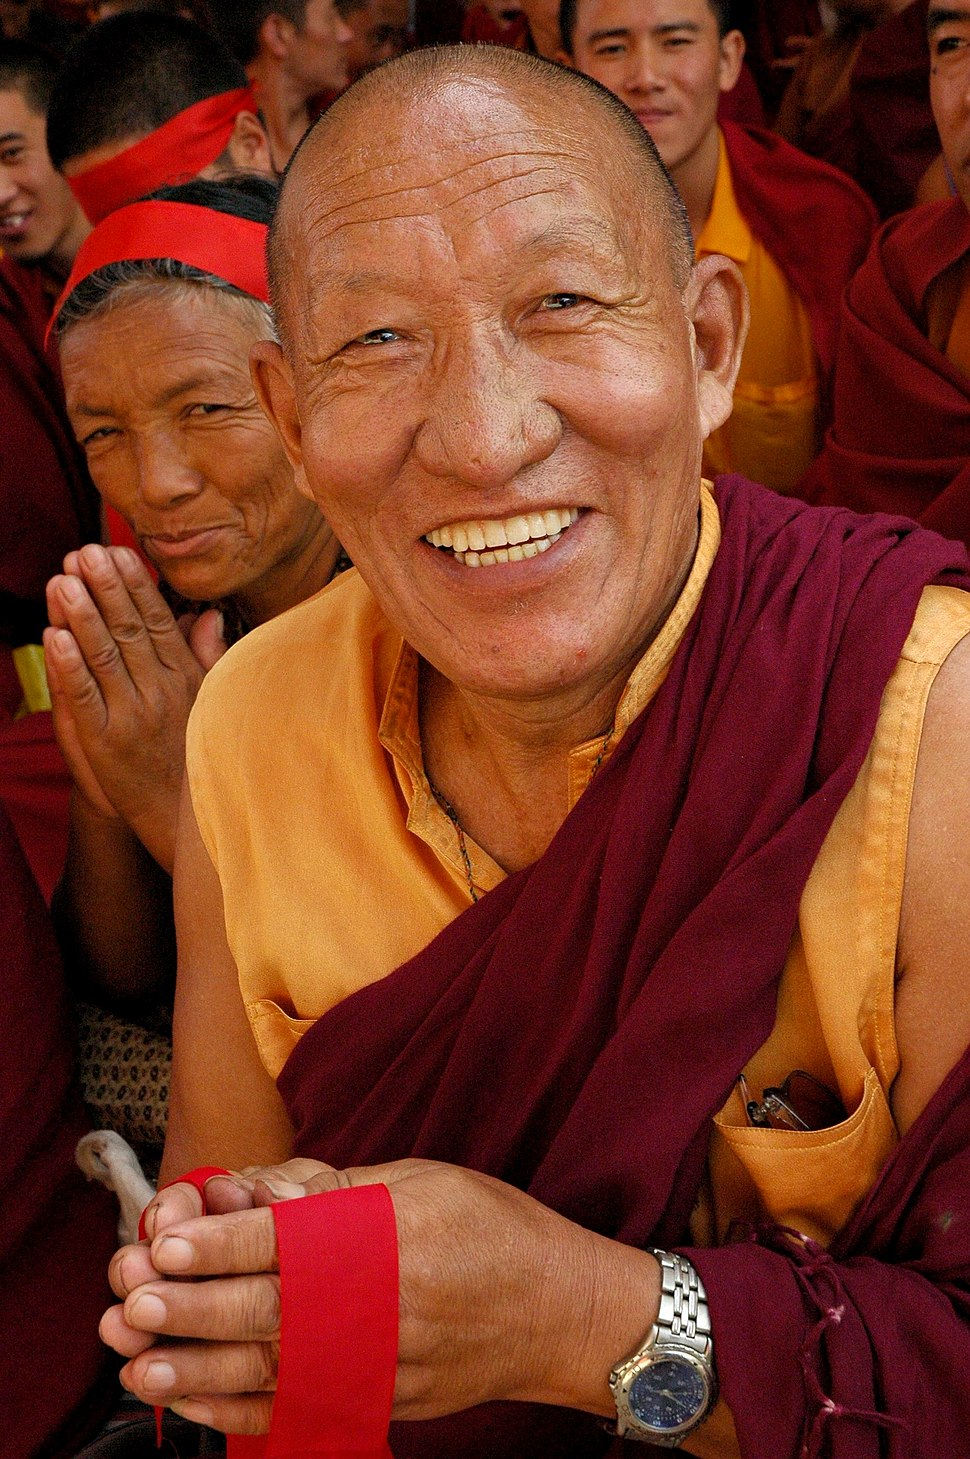 Very happy Tibetan Buddhist Monk